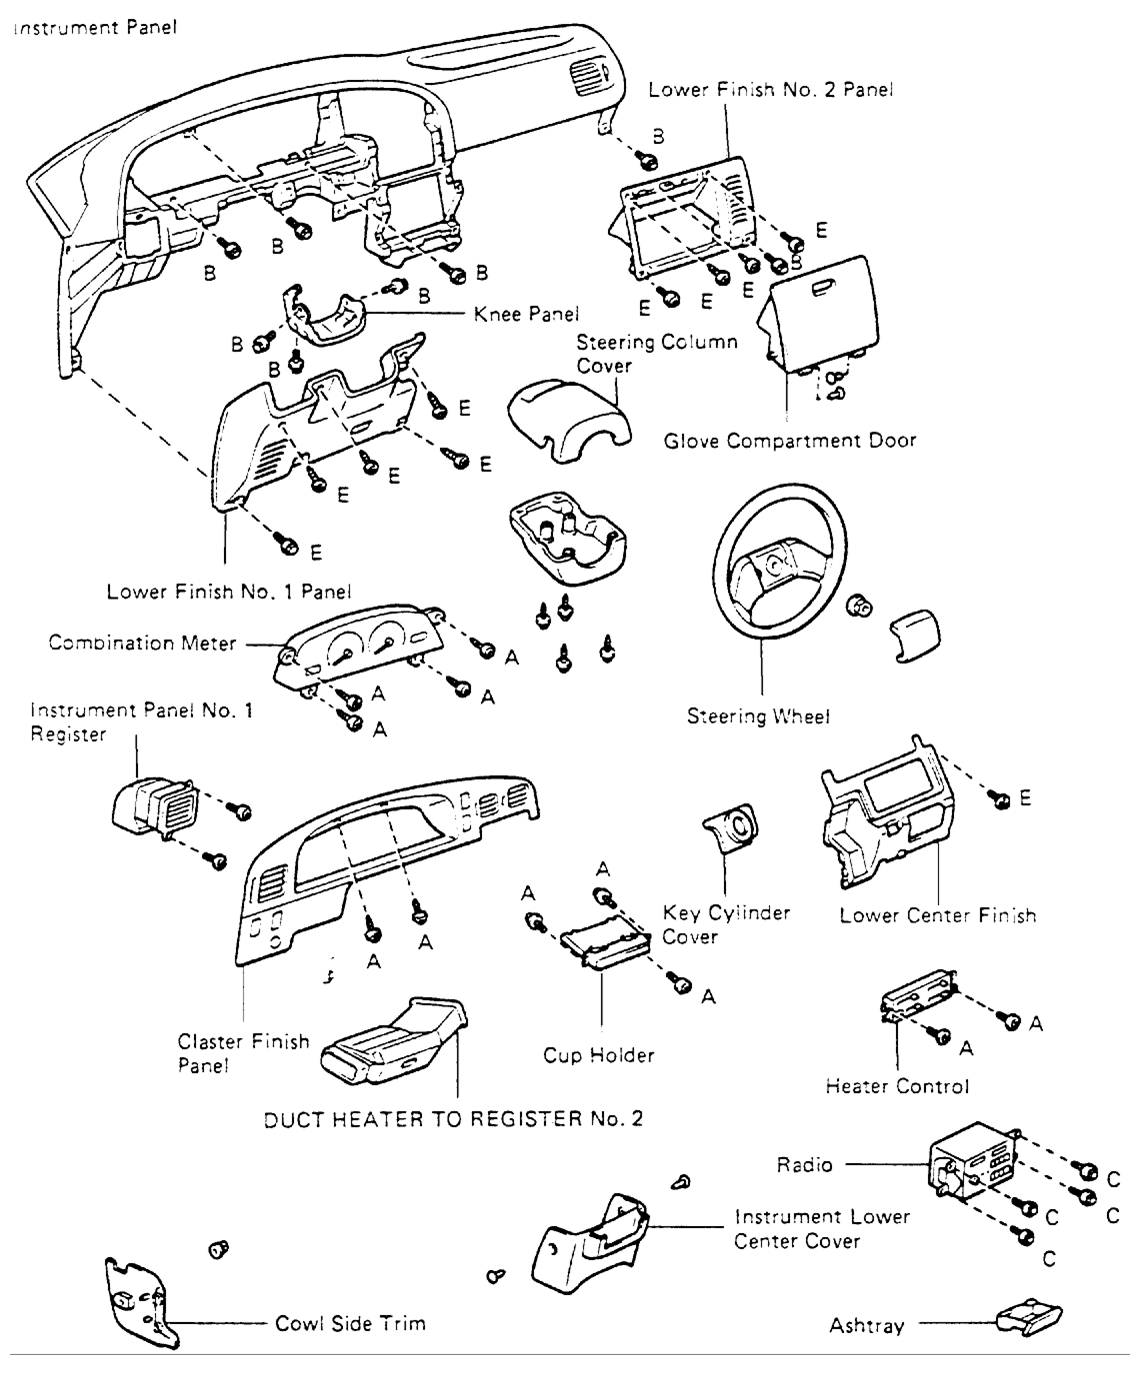 i need to know how to remove the dashboard in a  u0026 39 93 4runner  my old 4runner was totaled and the